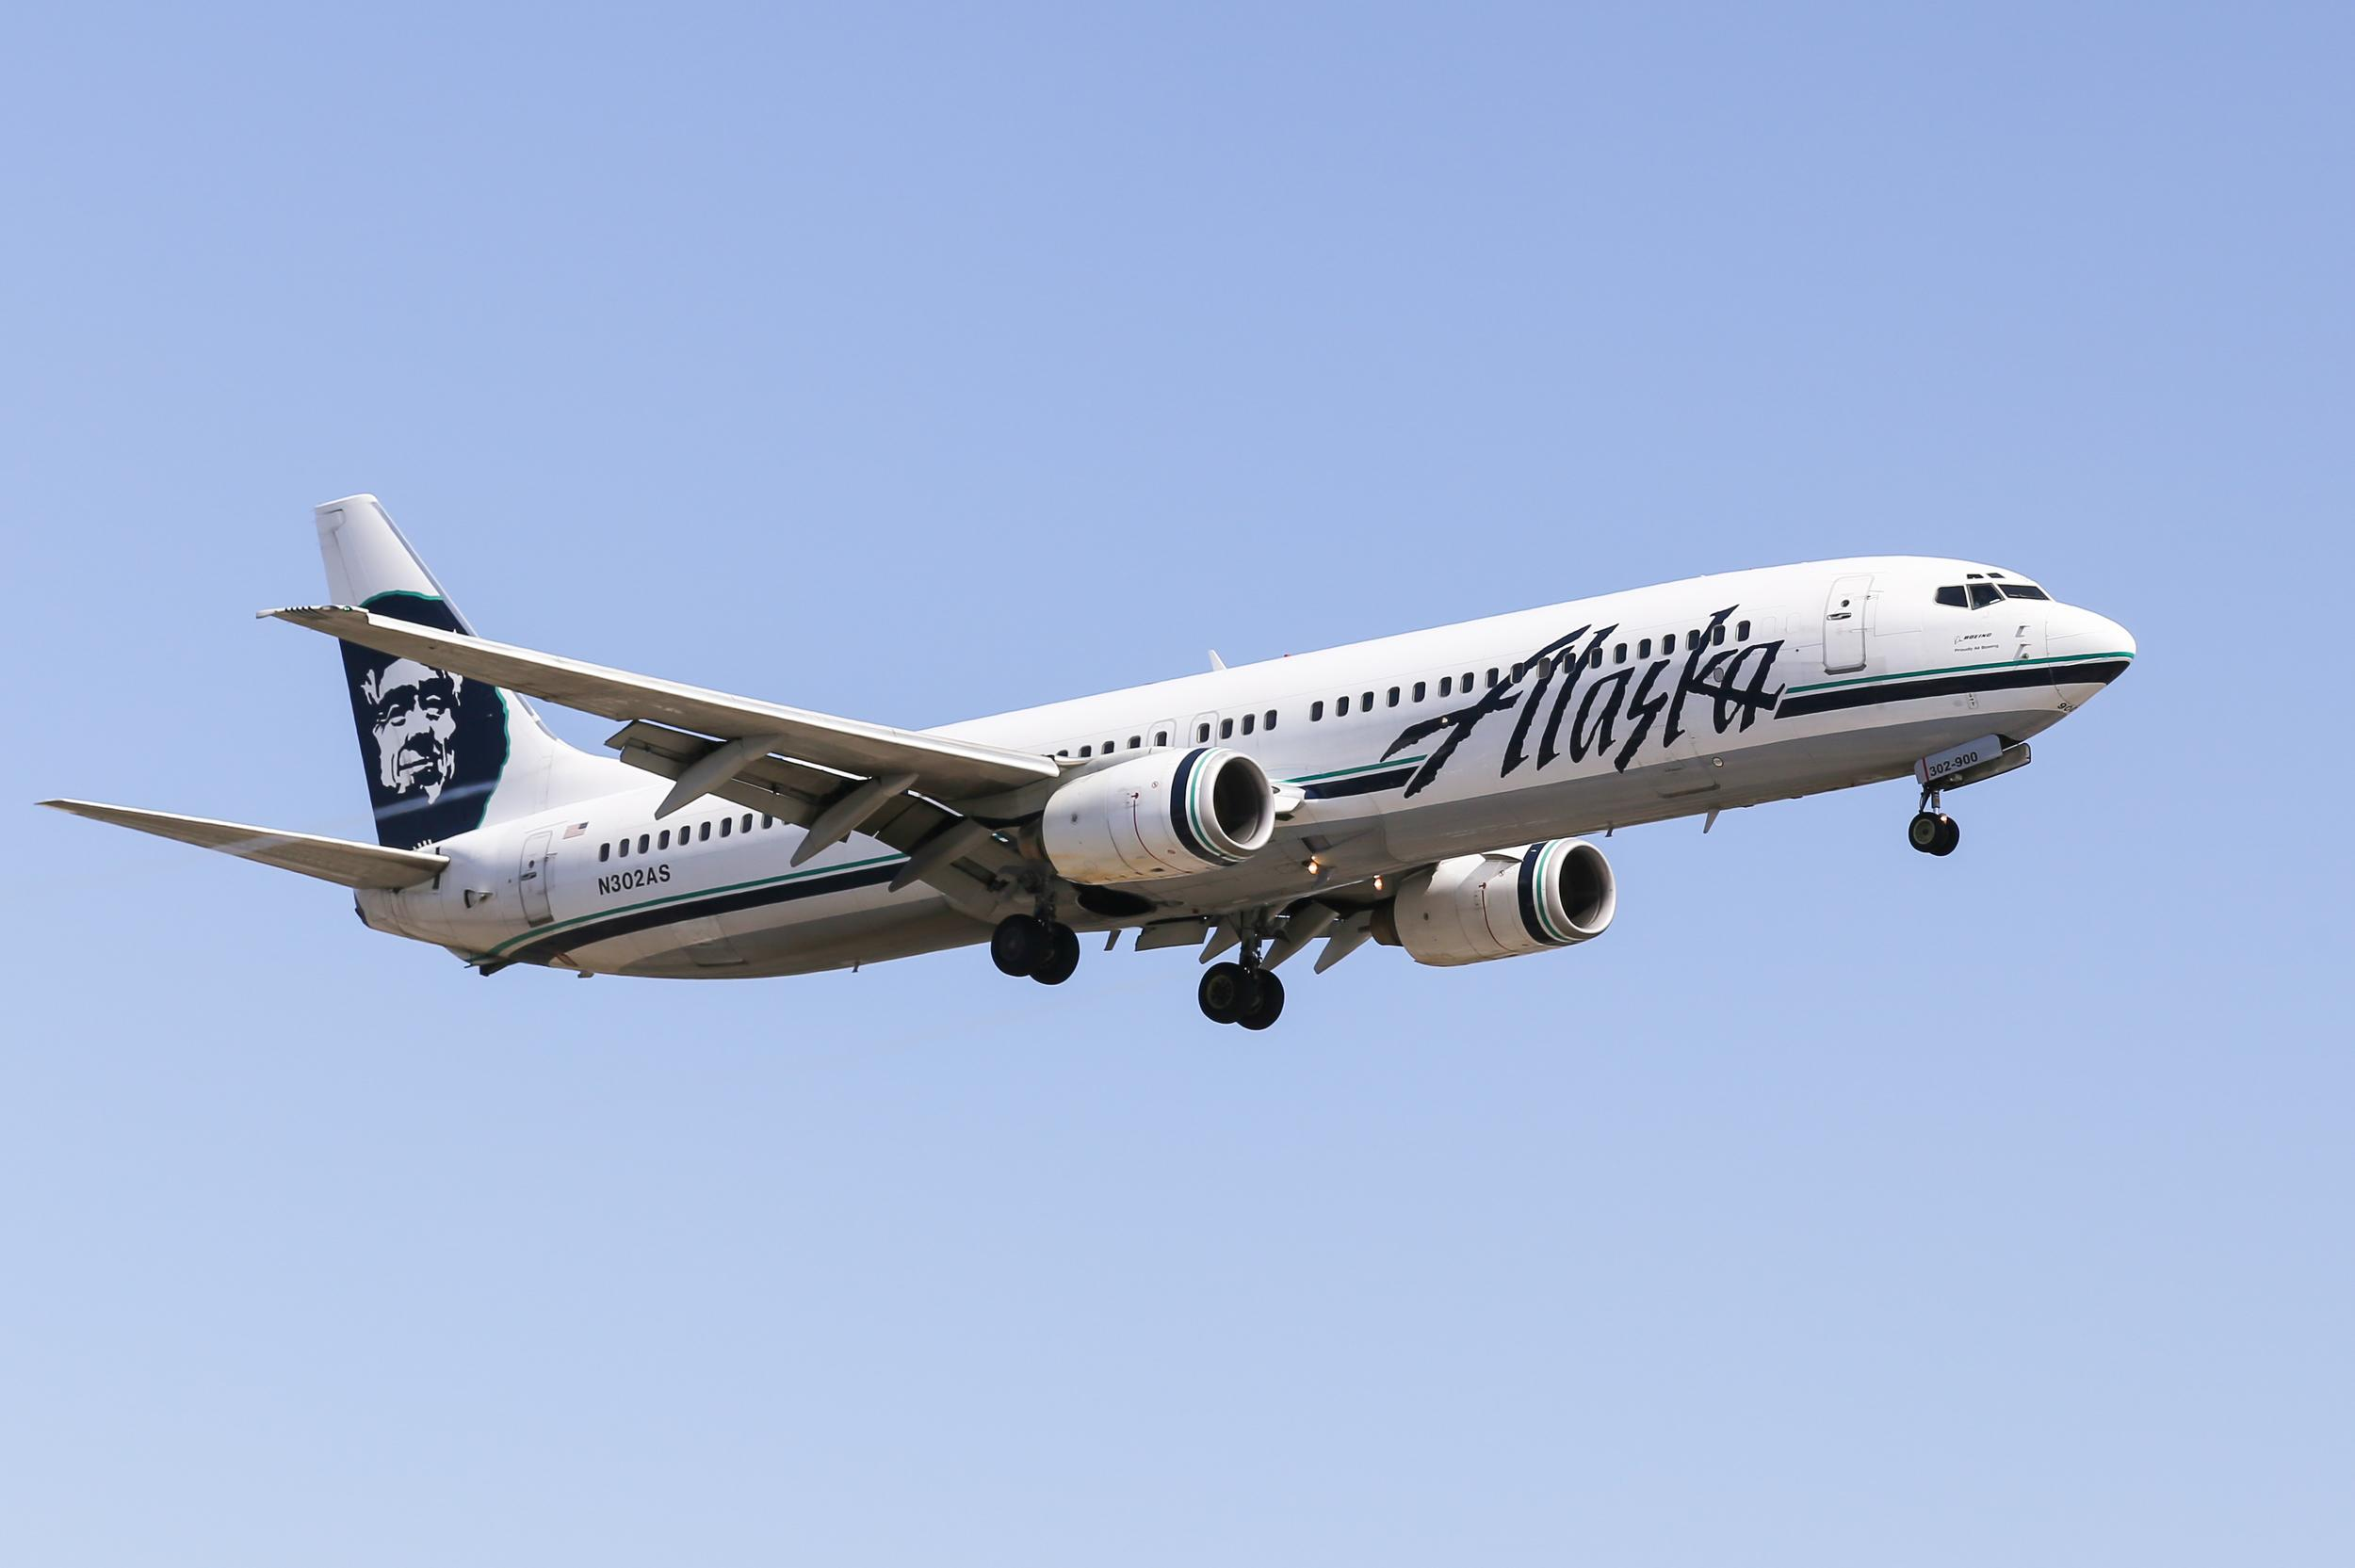 """Police were forced to arrest a first-class passenger at gunpoint on an Alaska Airlines flight from Seattle when the passenger <a href=""""https://www.adn.com/alaska-news/crime-courts/2017/06/09/man-removed-from-alaska-airlines-jet-at-gunpoint-after-threat-to-blow-up-the-plane/"""" target=""""_blank"""">made threats that that """"he would shoot other passengers or blow up the plane""""</a>. The incident in 2017 saw the flight crew report that """"they possibly had an armed passenger on the plane."""" Four police officers immediately boarded the aircraft as it taxied to a terminal. Police and Fire Chief Jesse Davis said: """"We also had checked the plane and interviewed witnesses, and it appears that there was no weapon."""""""